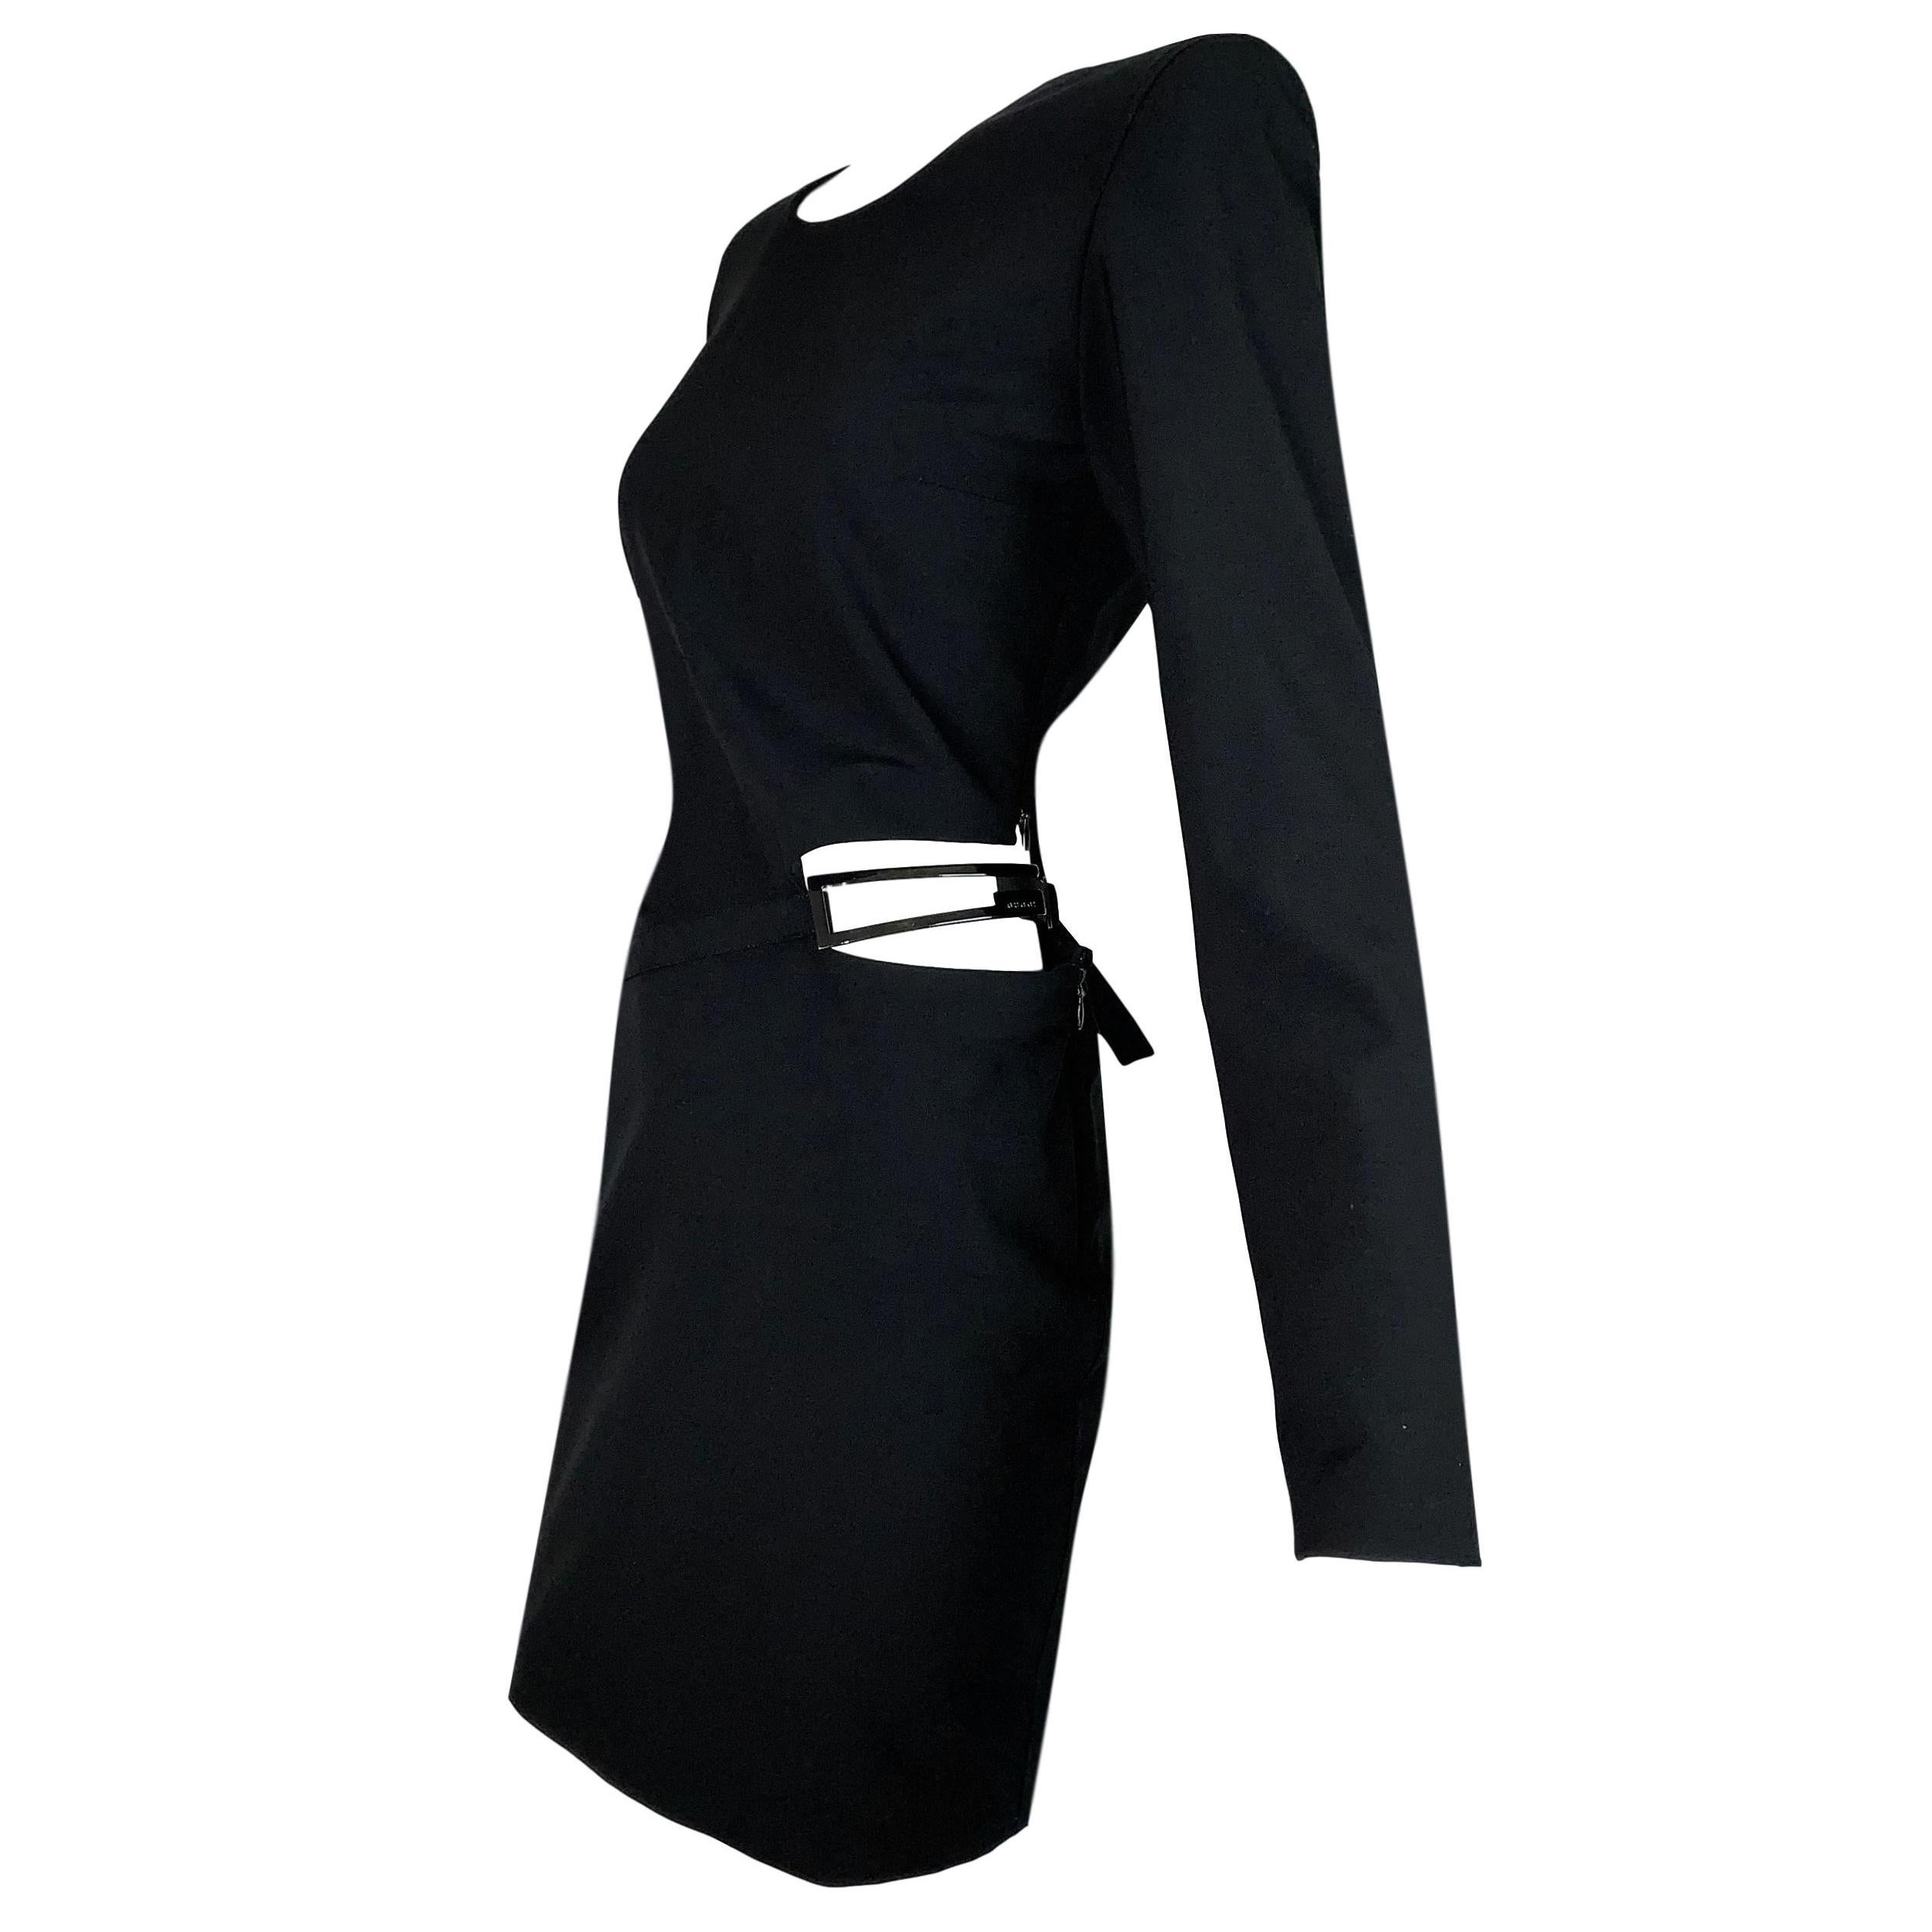 91f41dd5abf Tom Ford for Gucci: Dresses, Coats & More - 331 For Sale at 1stdibs